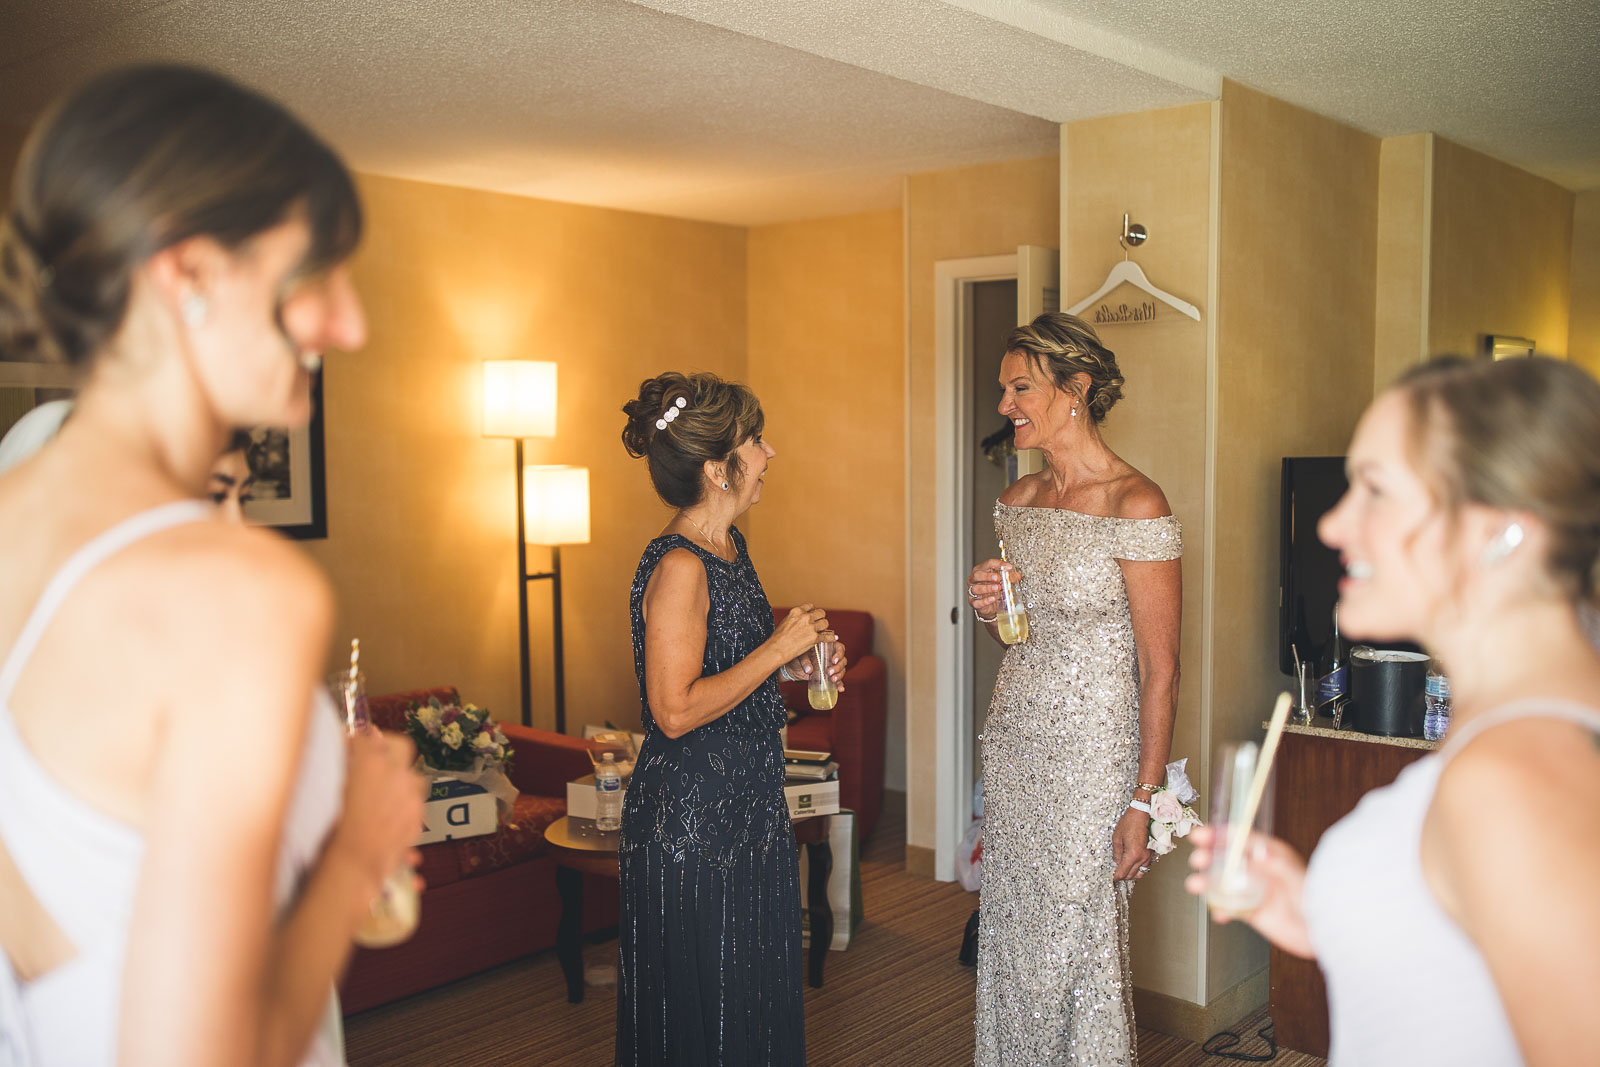 Moms have a happy moment before wedding